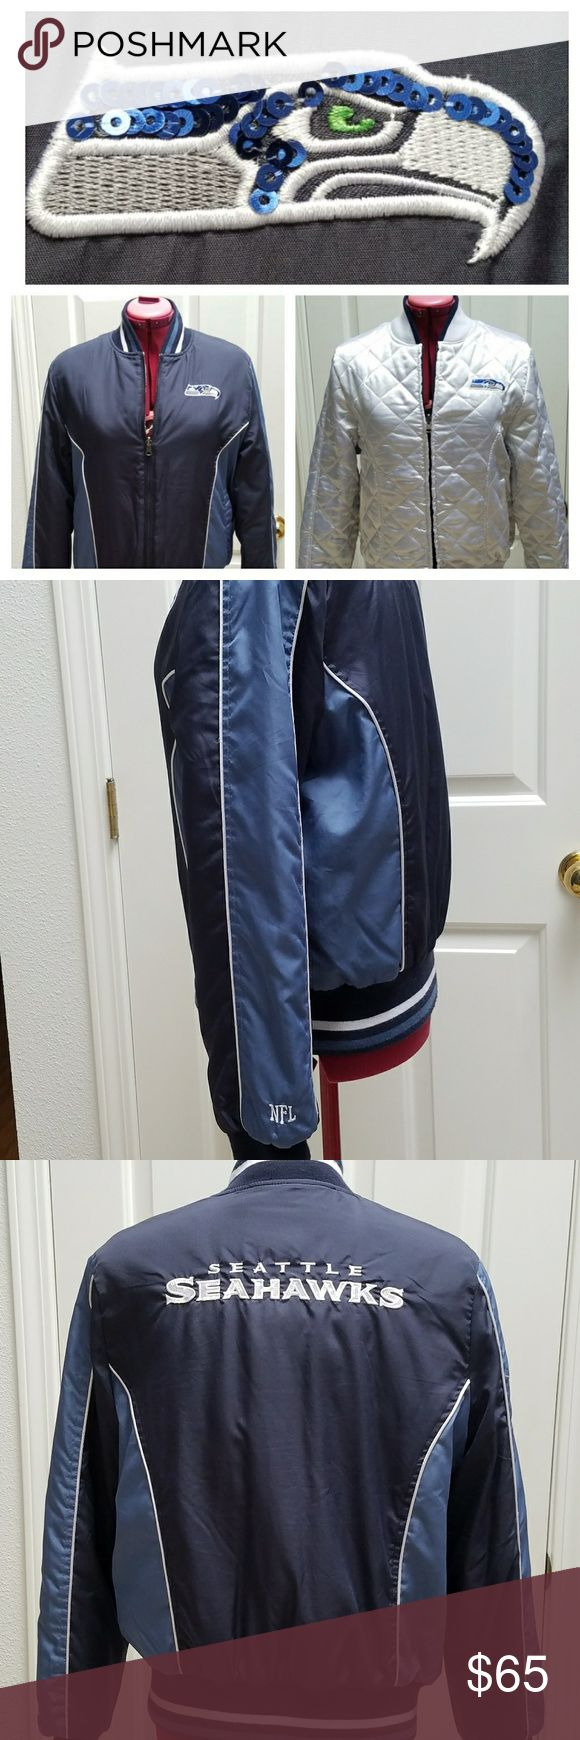 NEW LISTING! RARE Reversible NFL Seahawks Jacket It breaks my heart to let go of this amazing jacket. I've only worn it during the playoffs. REASONABLE OFFERS ACCEPTED. NO LOW BALLING PLEASE. NO TRADES PLEASE. NFL Jackets & Coats